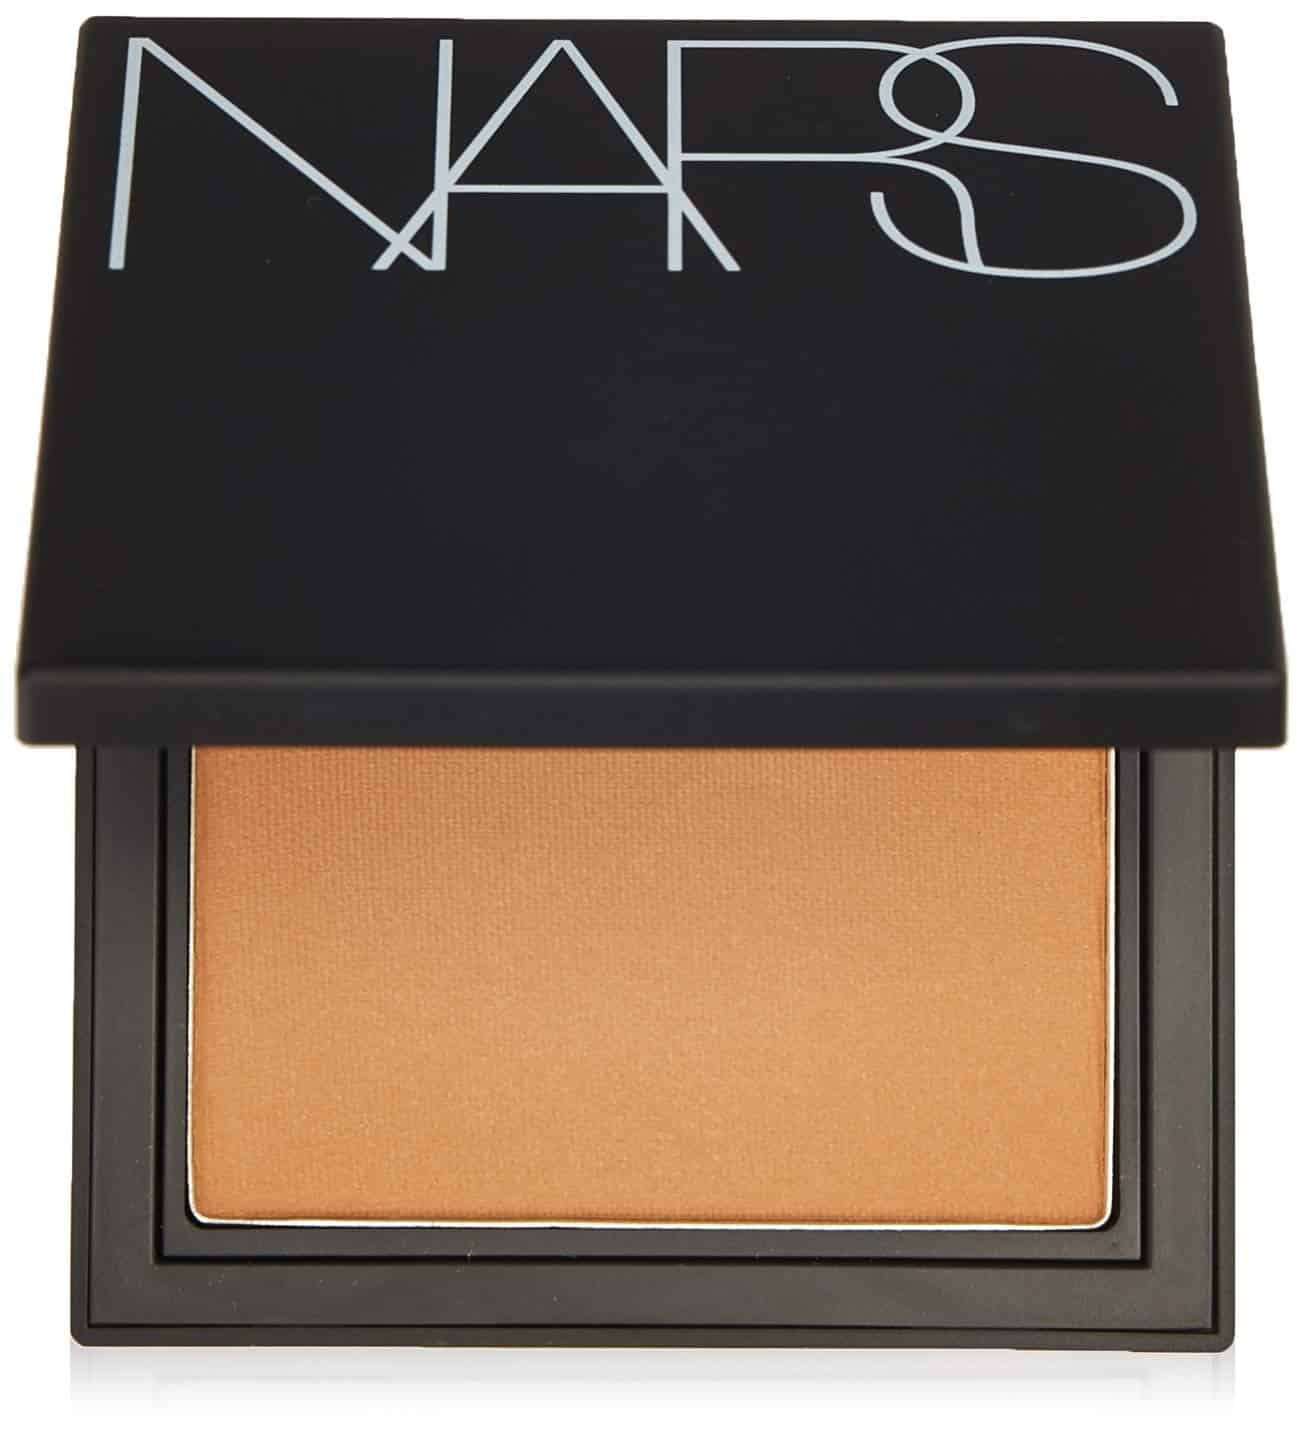 Nars All Day Luminous Powder Foundation Spf 24 Review